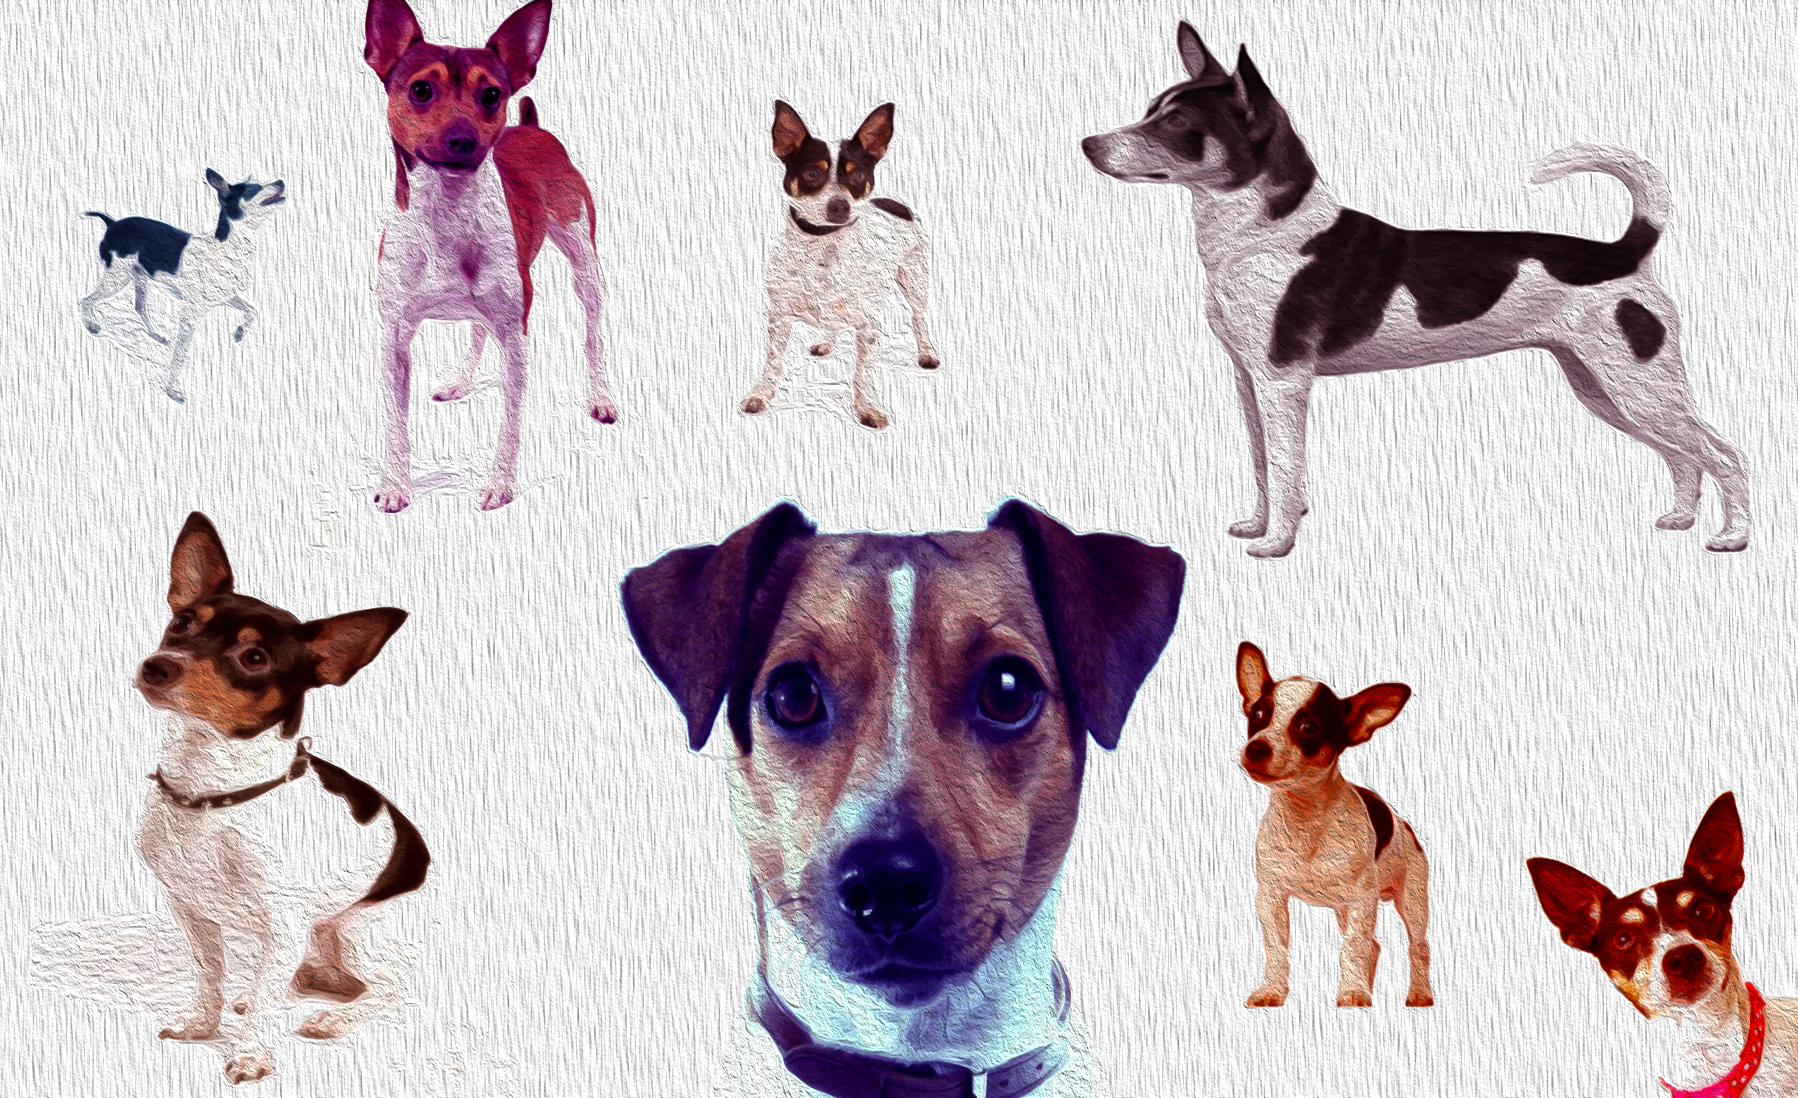 RatTerrierAdvice.com - Oil Paint - Rat Terrier Breed Profile and Information on Different Types of Rat Terriers